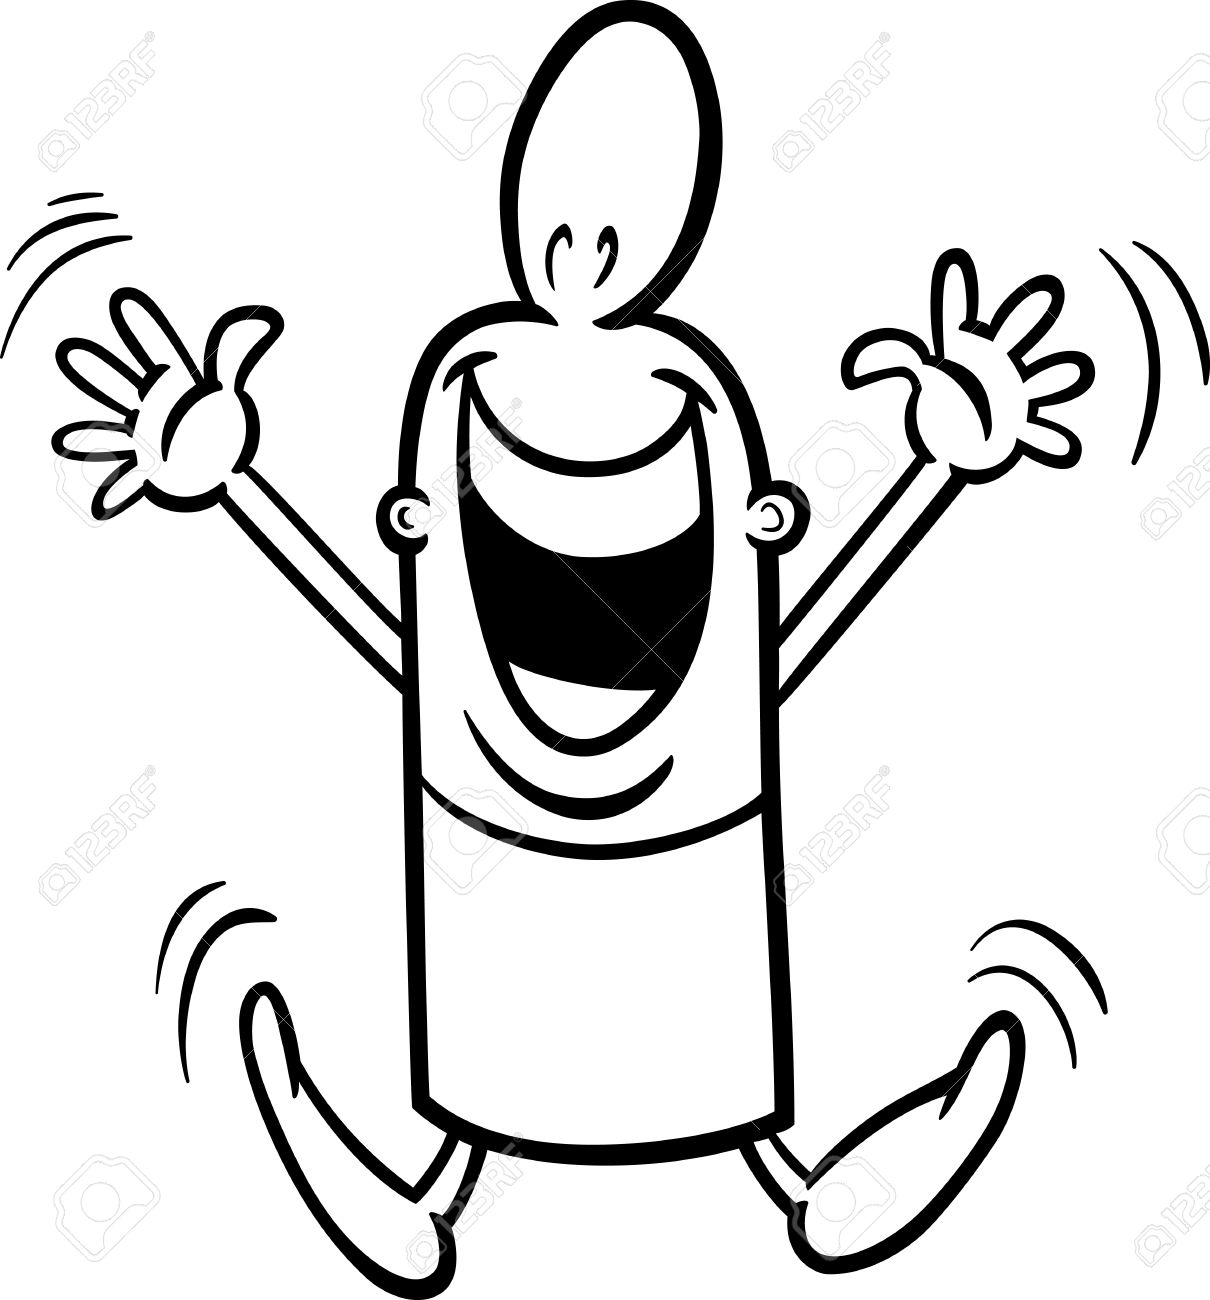 1210x1300 Black And White Cartoon Illustration Of Happy Or Excited Funny